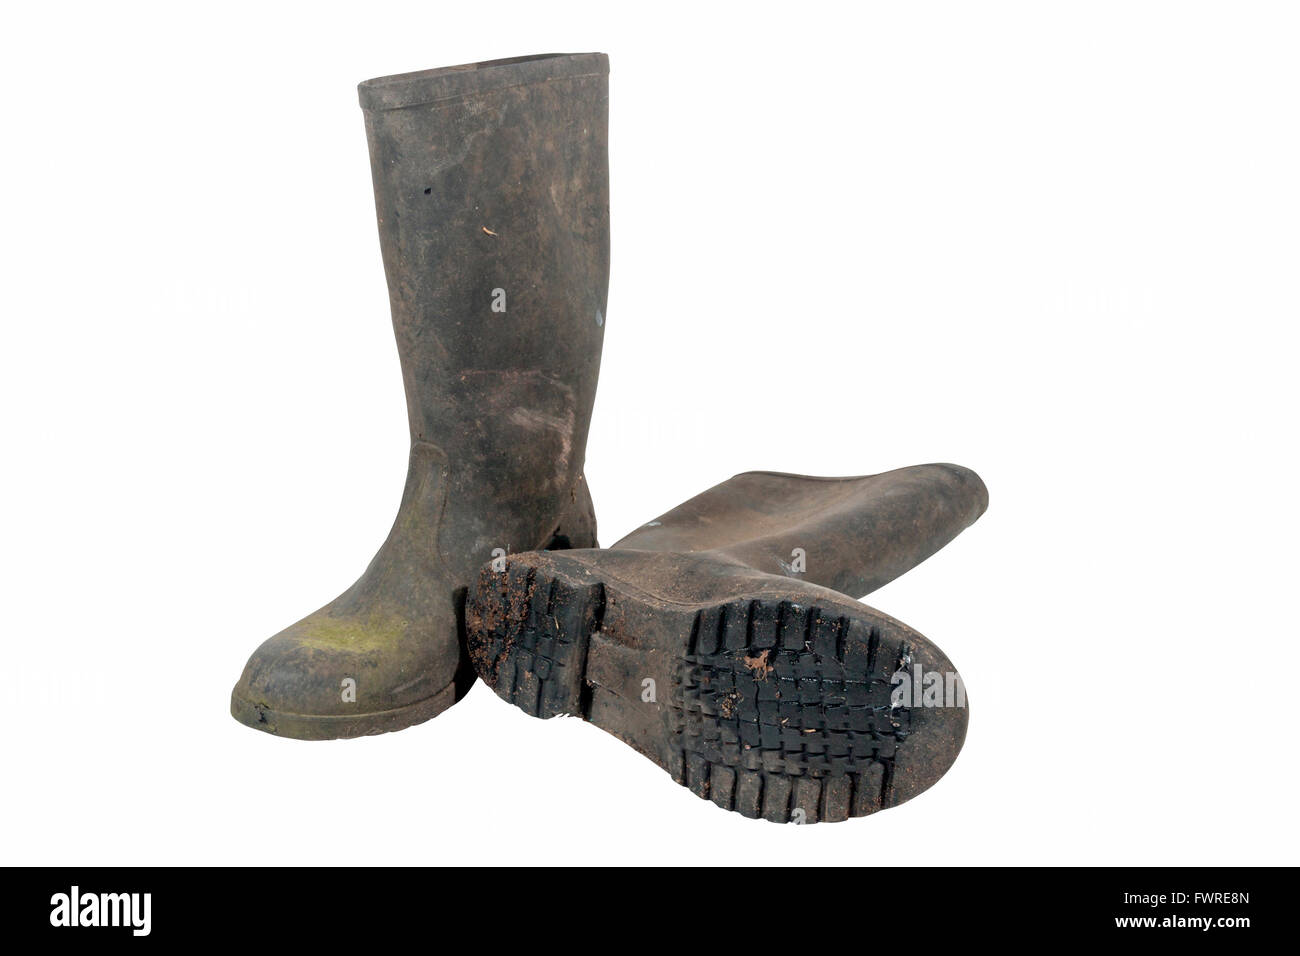 Isolated pair of grubby wellington boots showing pattern tread on sole - Stock Image